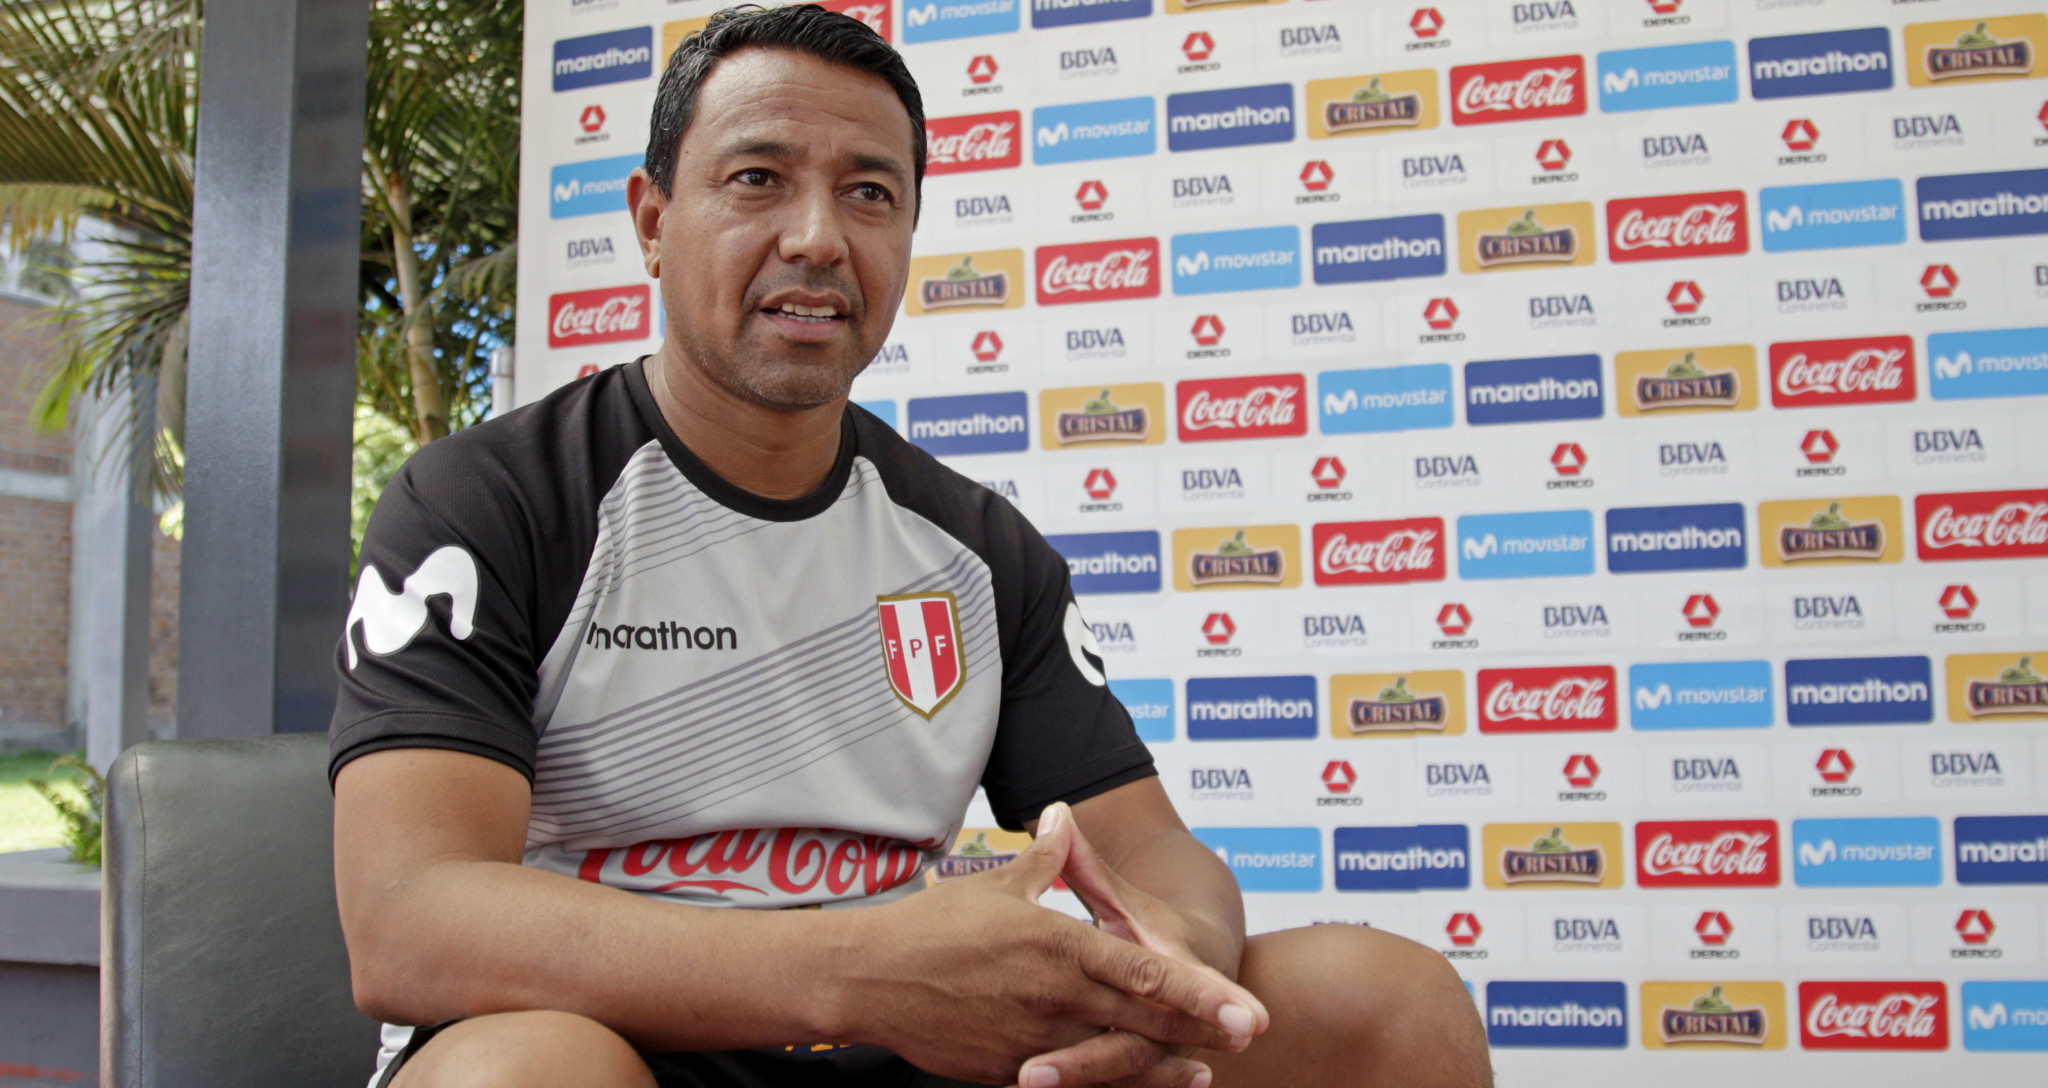 """Peru's Nolberto Solano said it would be an """"immense joy"""" to win a gold medal at the Lima 2019 Pan American Games ©Lima 2019"""